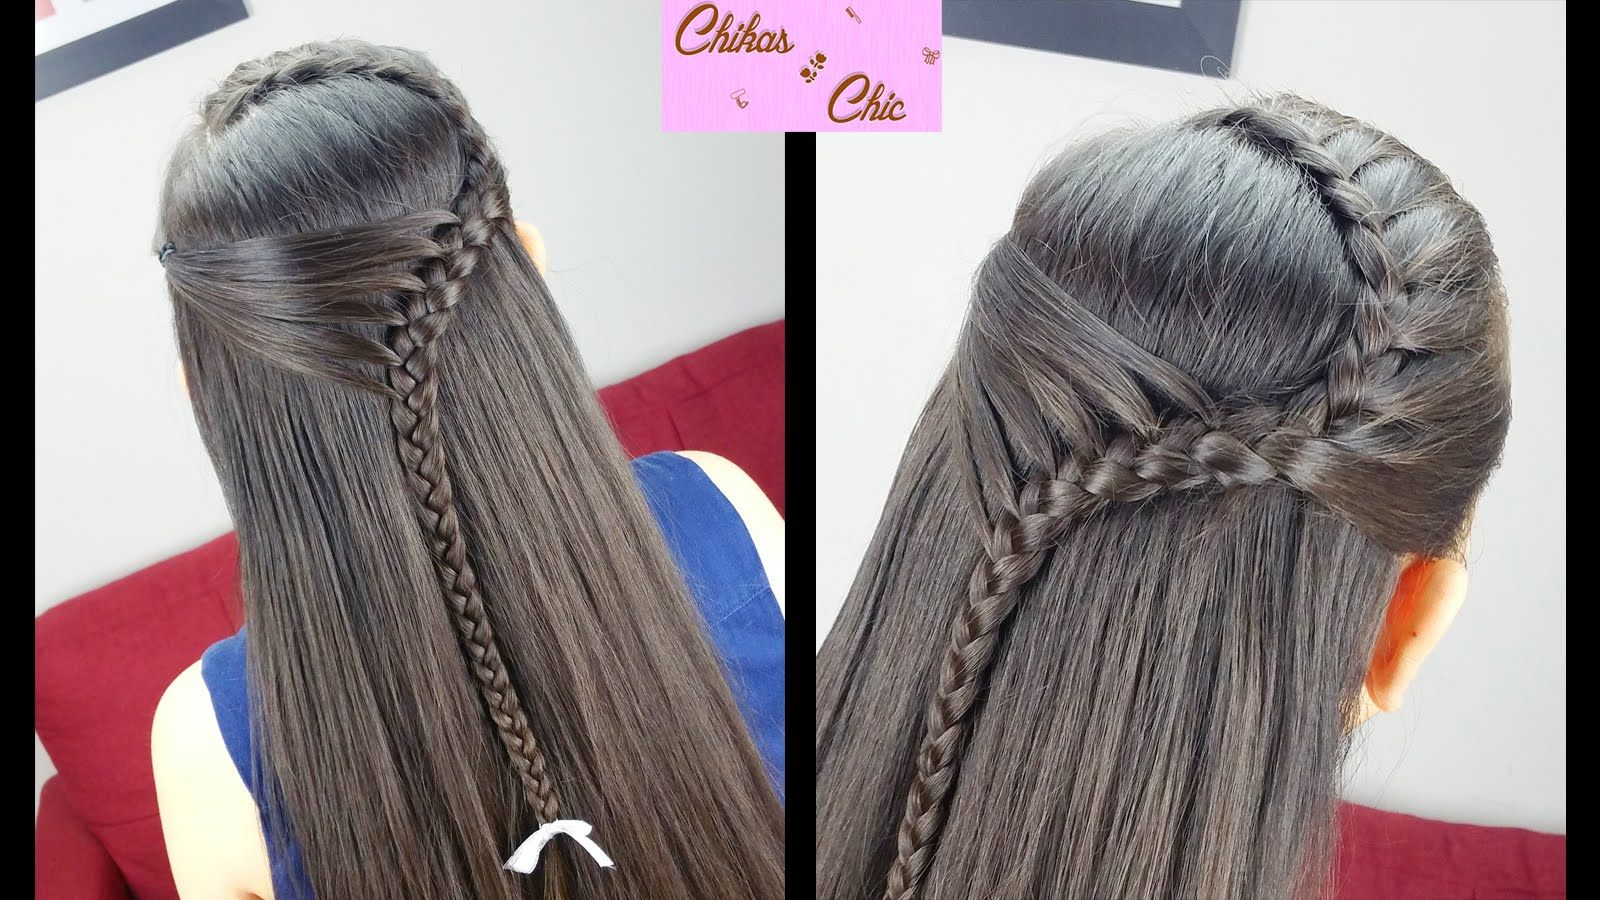 Sweet Ish Like Style Elevate With Tiny Claw Clips Pretty Pull Back Twist Hairstyle Is Coolest Hack For S